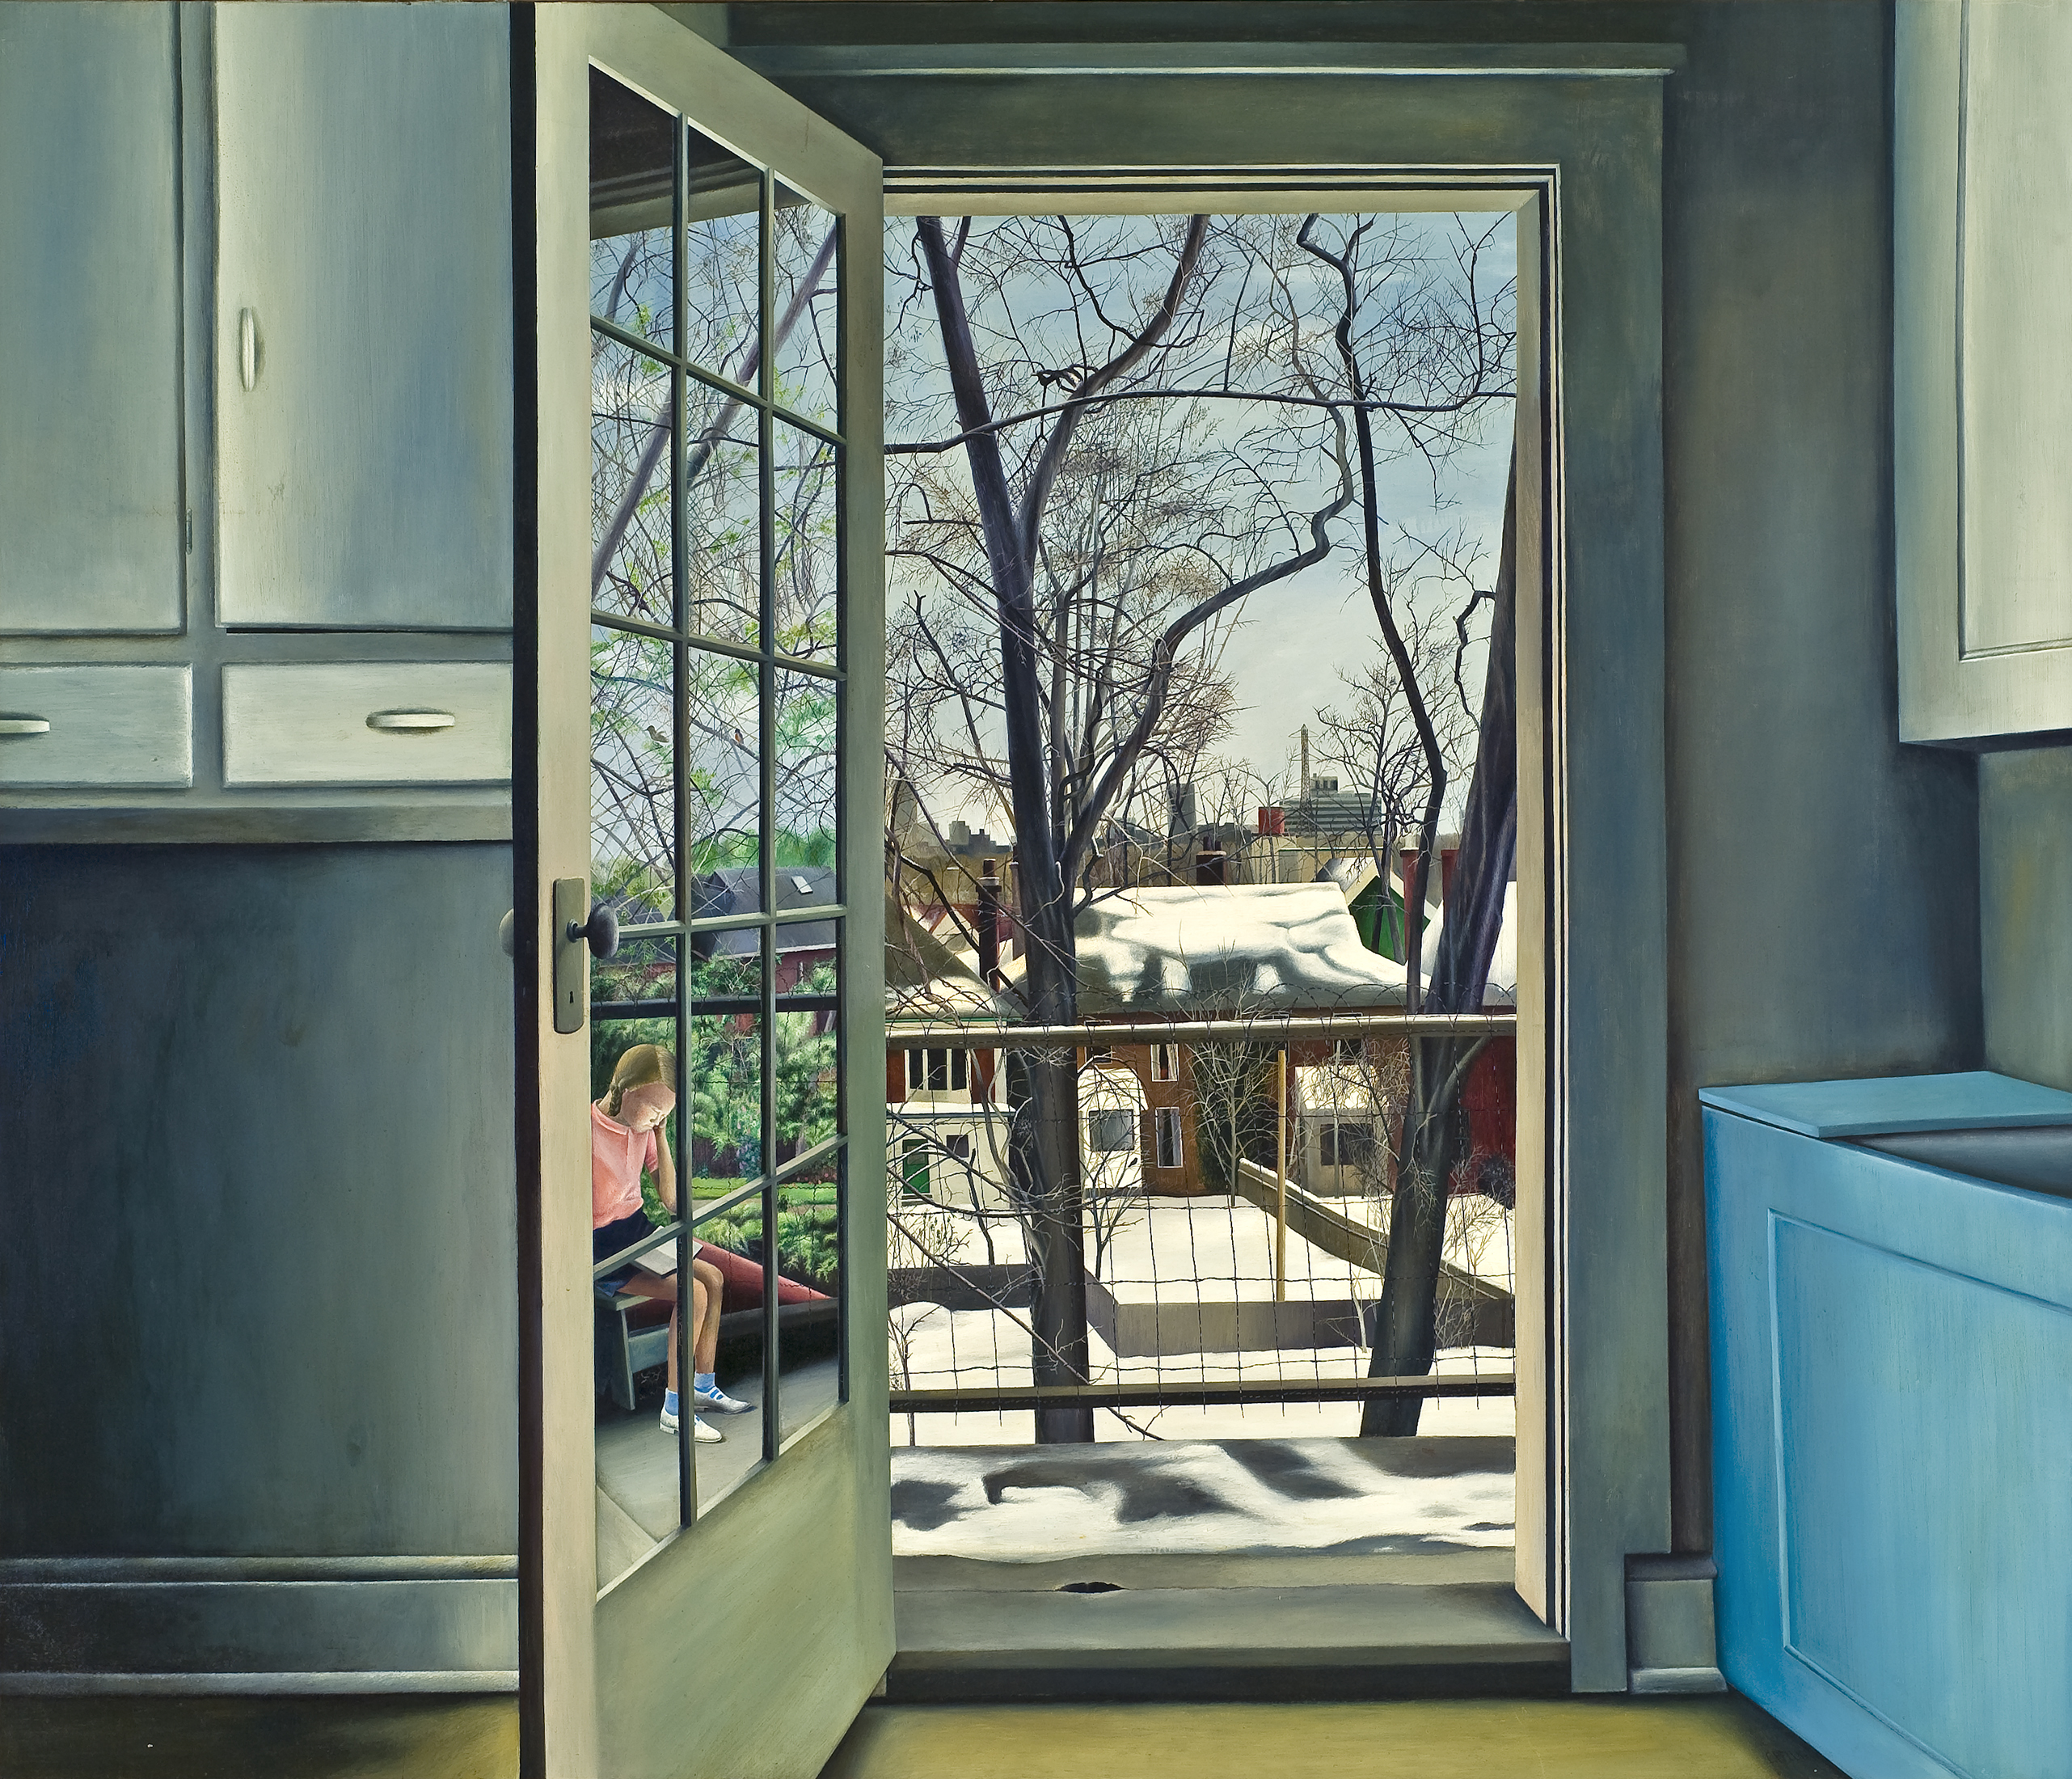 This view from inside a starkly bare kitchen shows an open doorway giving onto a balcony and a winter cityscape. However, the reflection in the glass door panes shows a springtime scene, where a little girl sits surrounded by greenery.